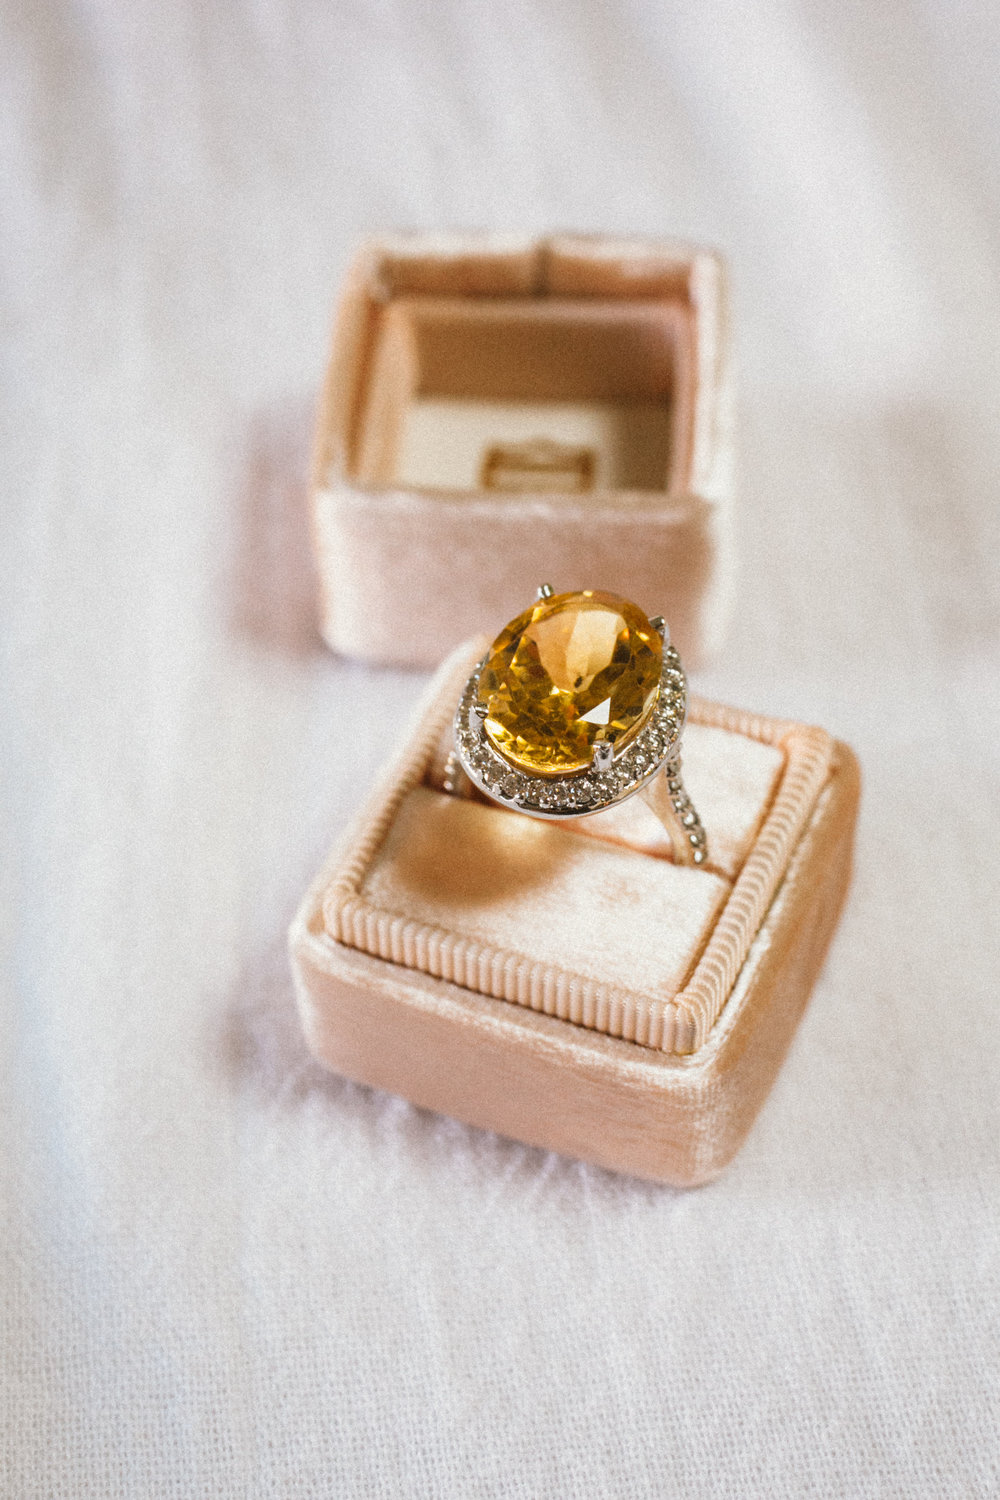 014_NYC-wedding-photographer-Amber-Marlow.jpg